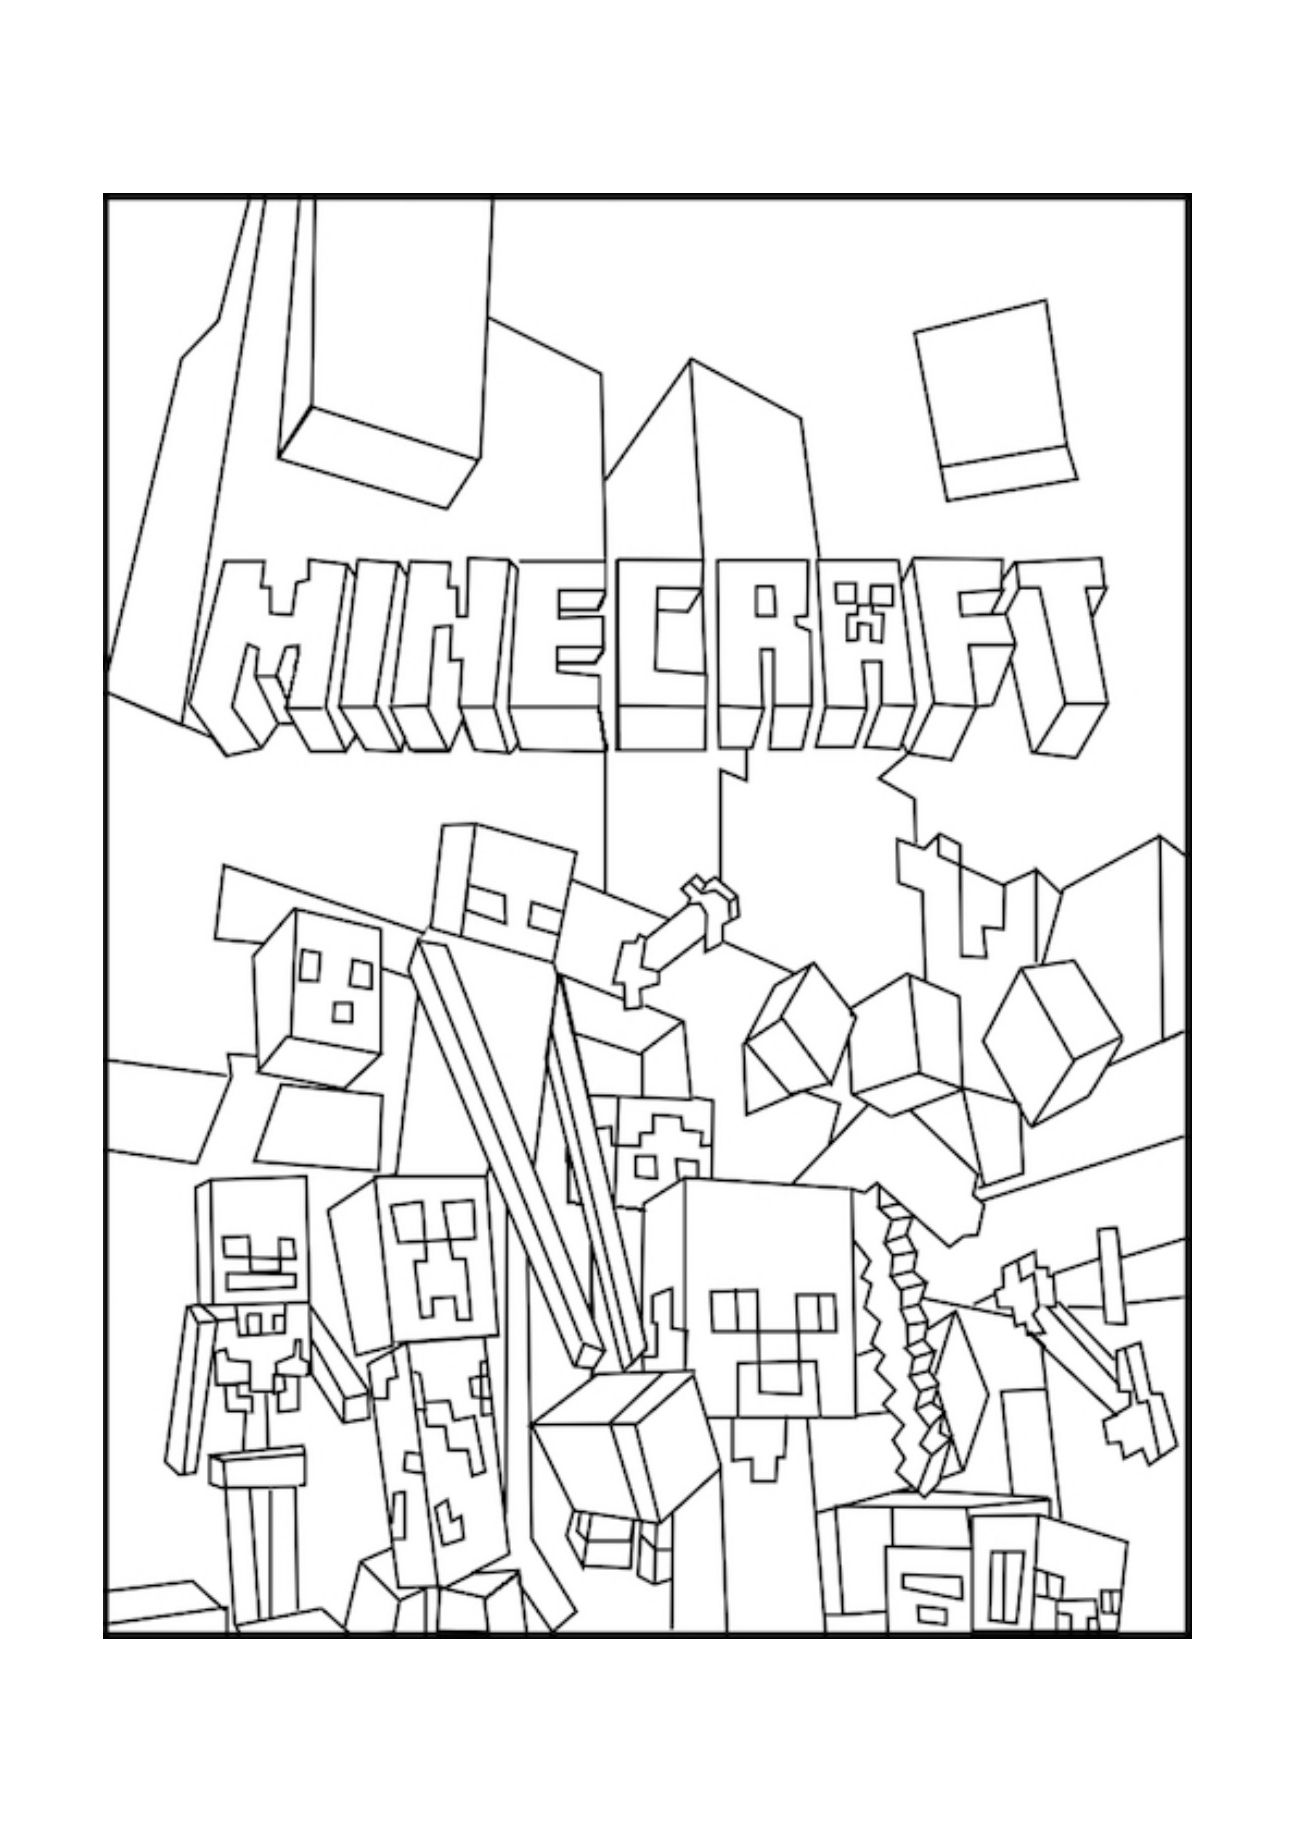 images of minecraft coloring pages minecraft world minecraft coloring pages for kids of minecraft coloring images pages